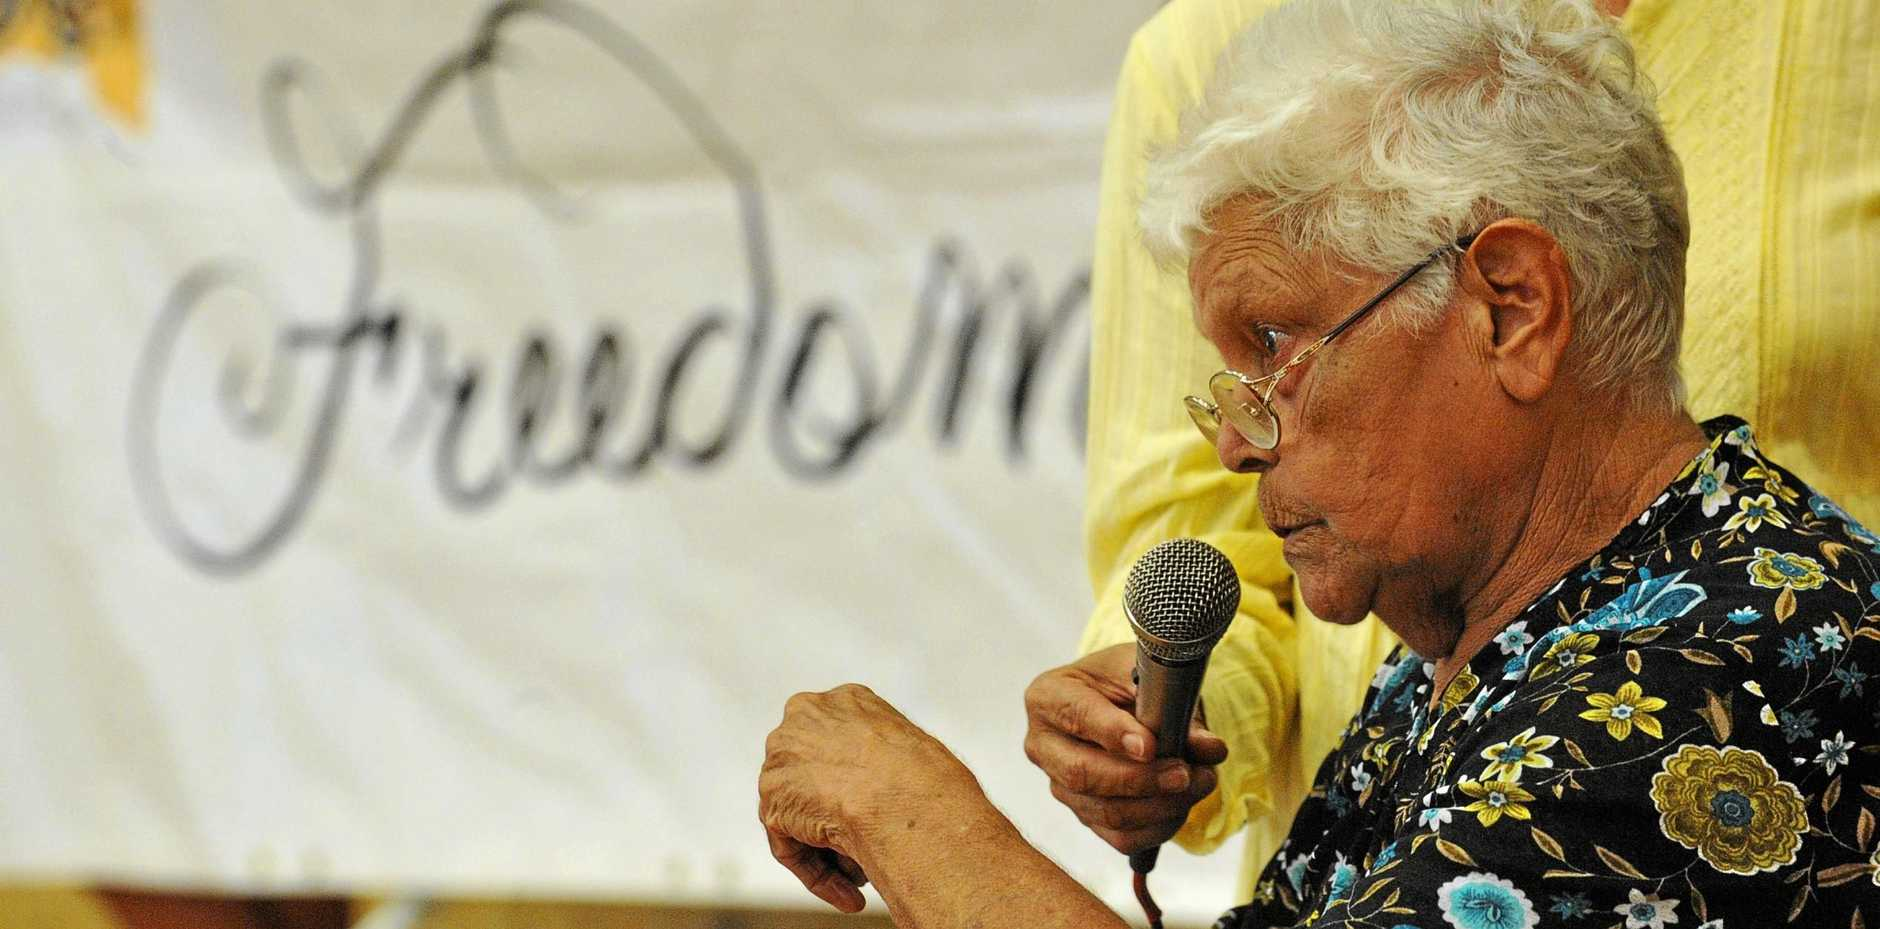 The late Aunty Pauline Gordon speaks to the crowd at the gathering for the Freedom Ride held at Grafton High School in 2011. Aunty Pauline was a member of the Stolen Generation. INSET: Early image from The Cootamundra Domestic Training Home for Aboriginal Girls, Bimbadeen, where Aunty Pauline was sent as an eight-year-old with her siblings.